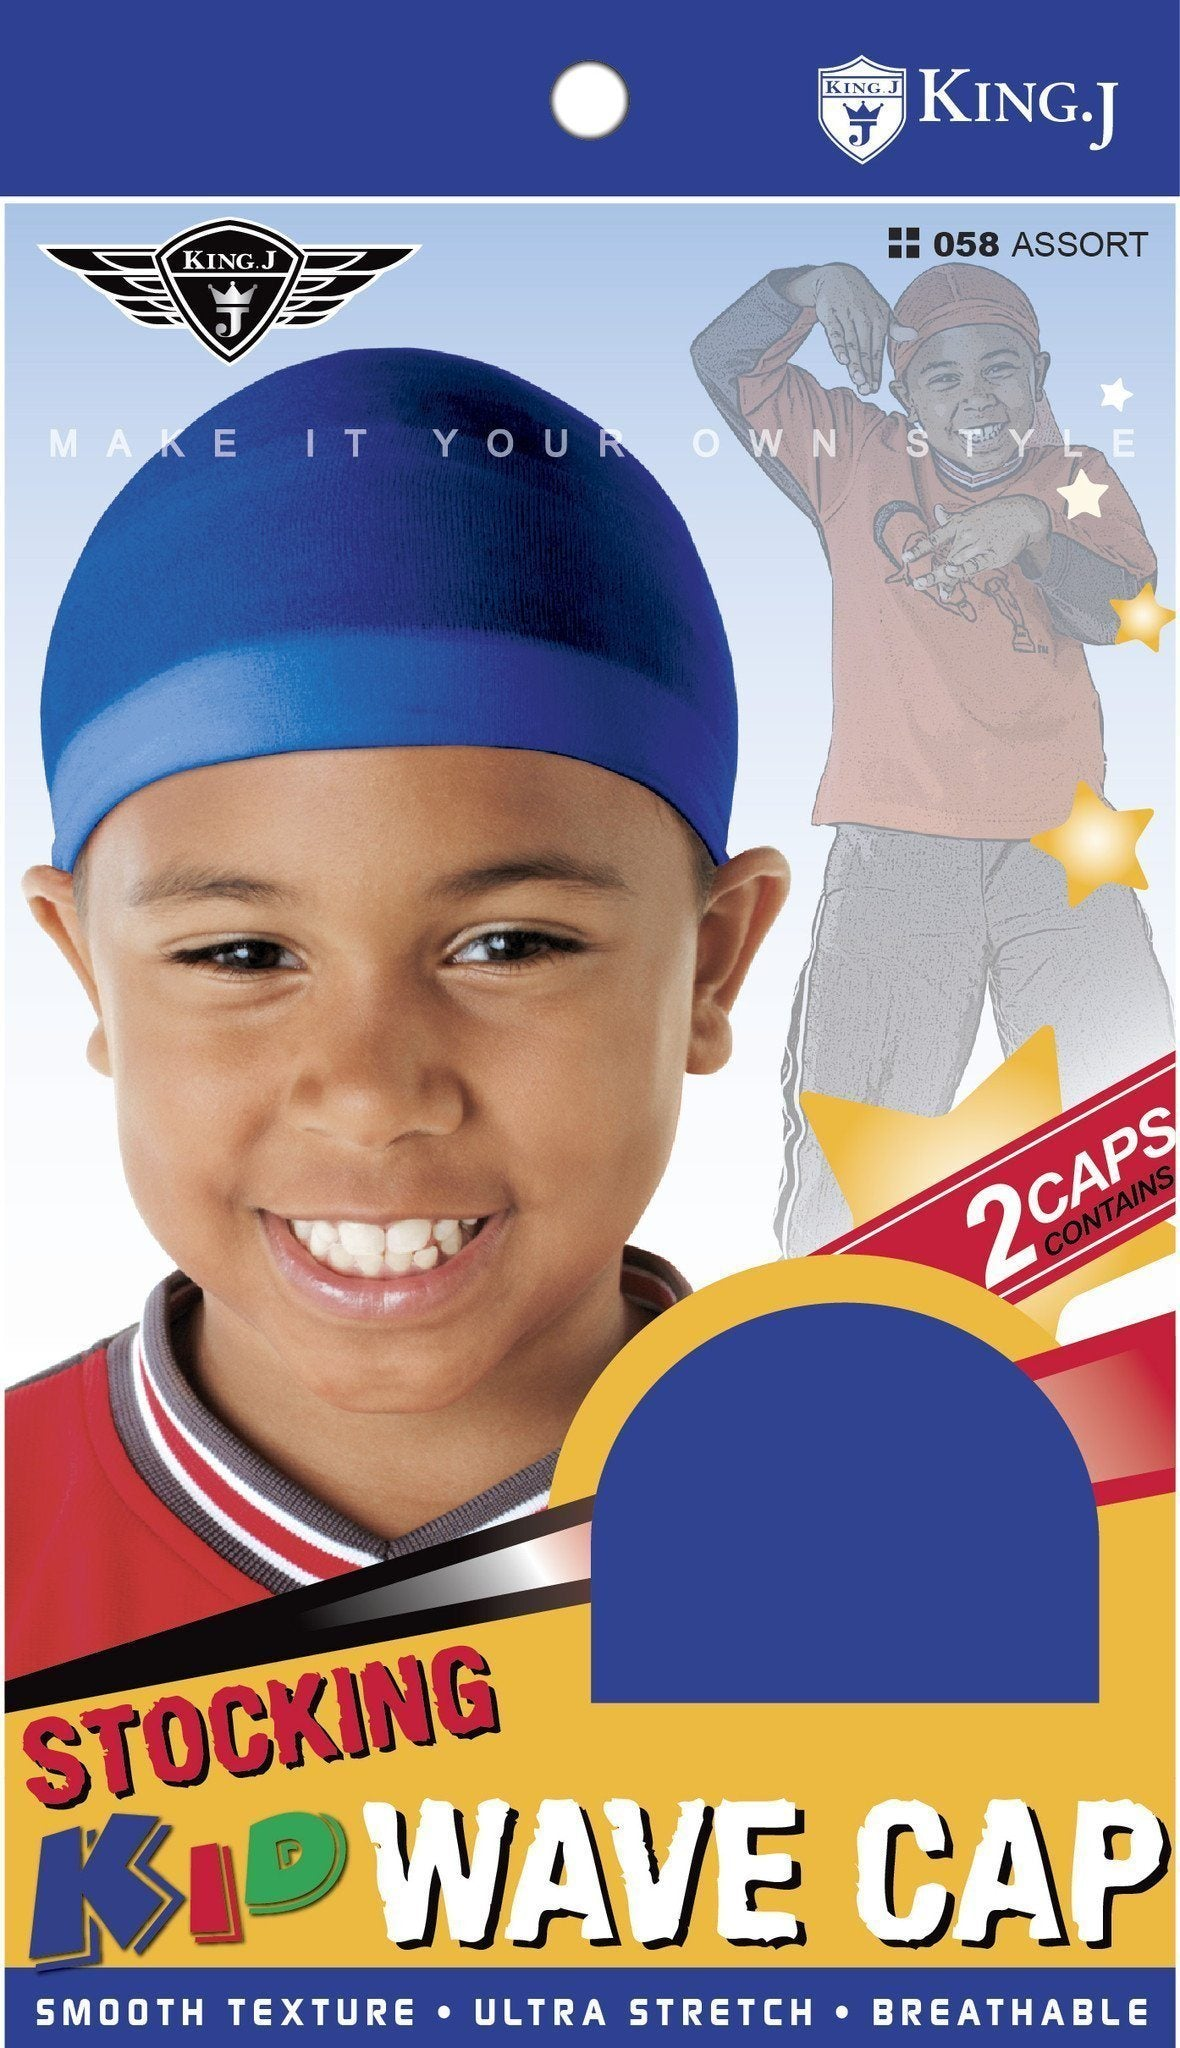 #058 Kid Stocking Wave Cap / Assort (Dz)